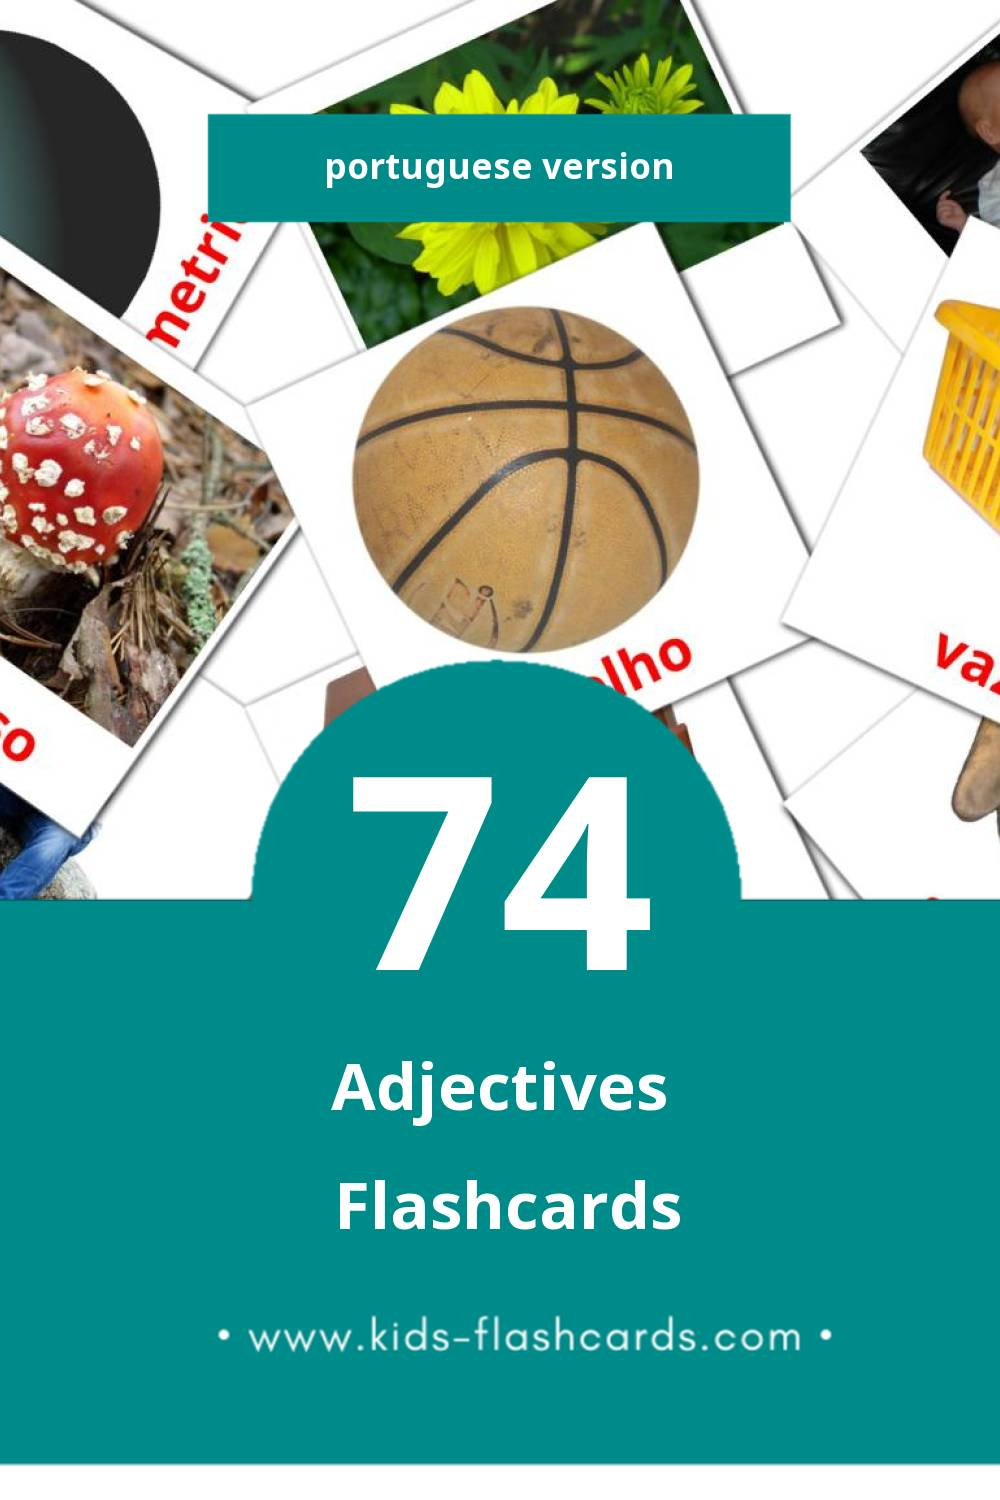 Visual Adjetivo Flashcards for Toddlers (74 cards in Portuguese)